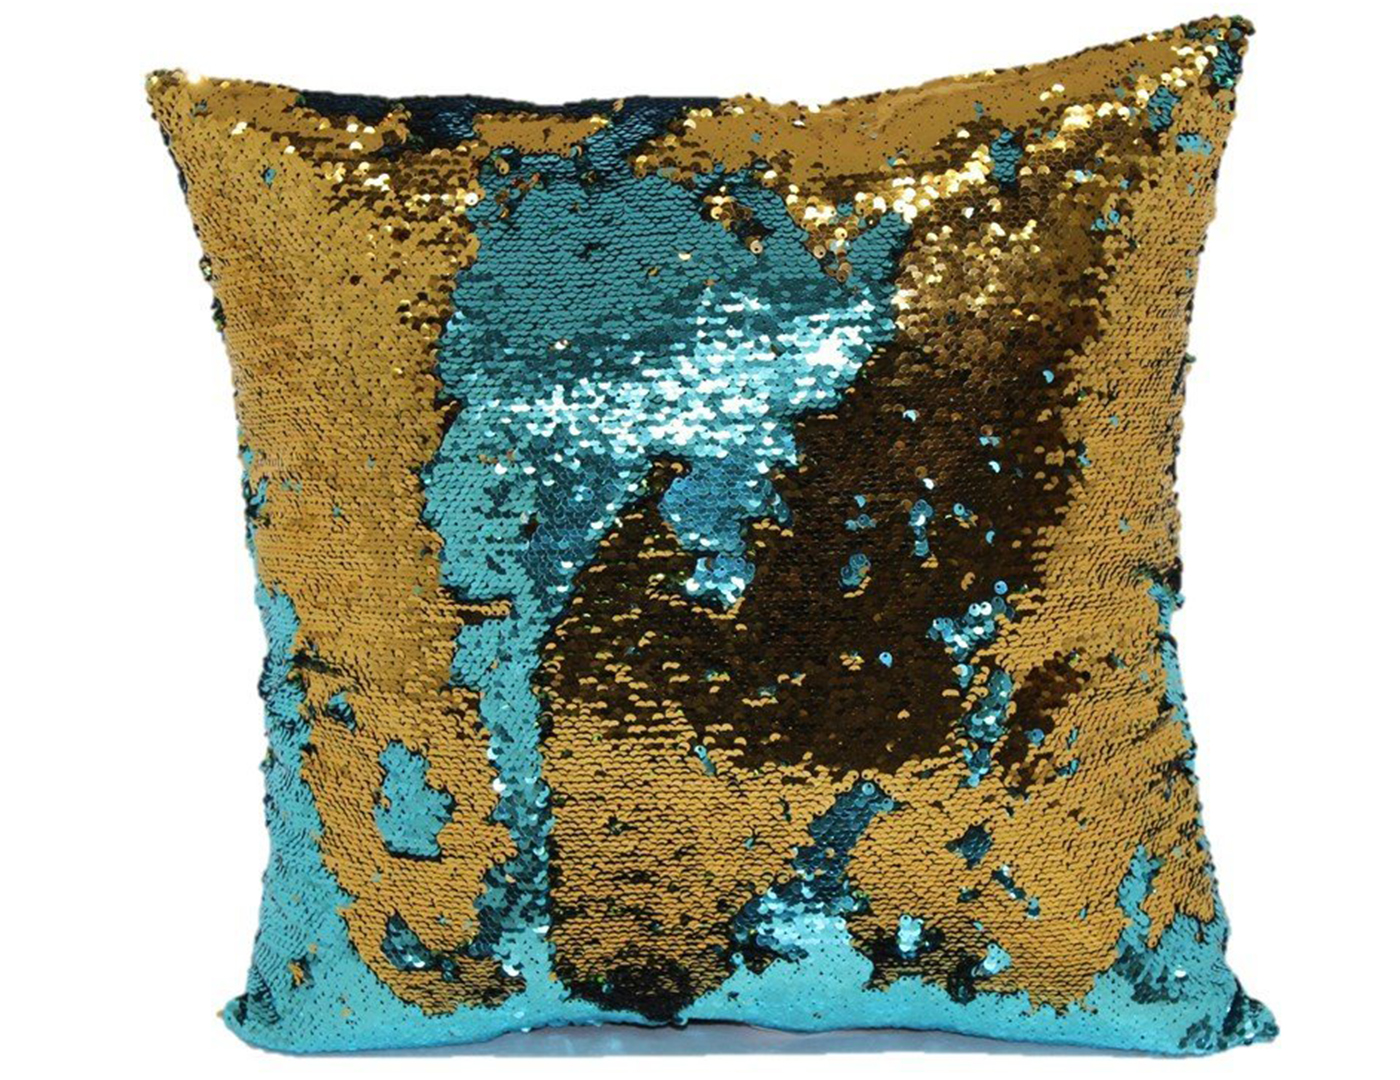 Teal and Bronze Mermaid Pillow 18""